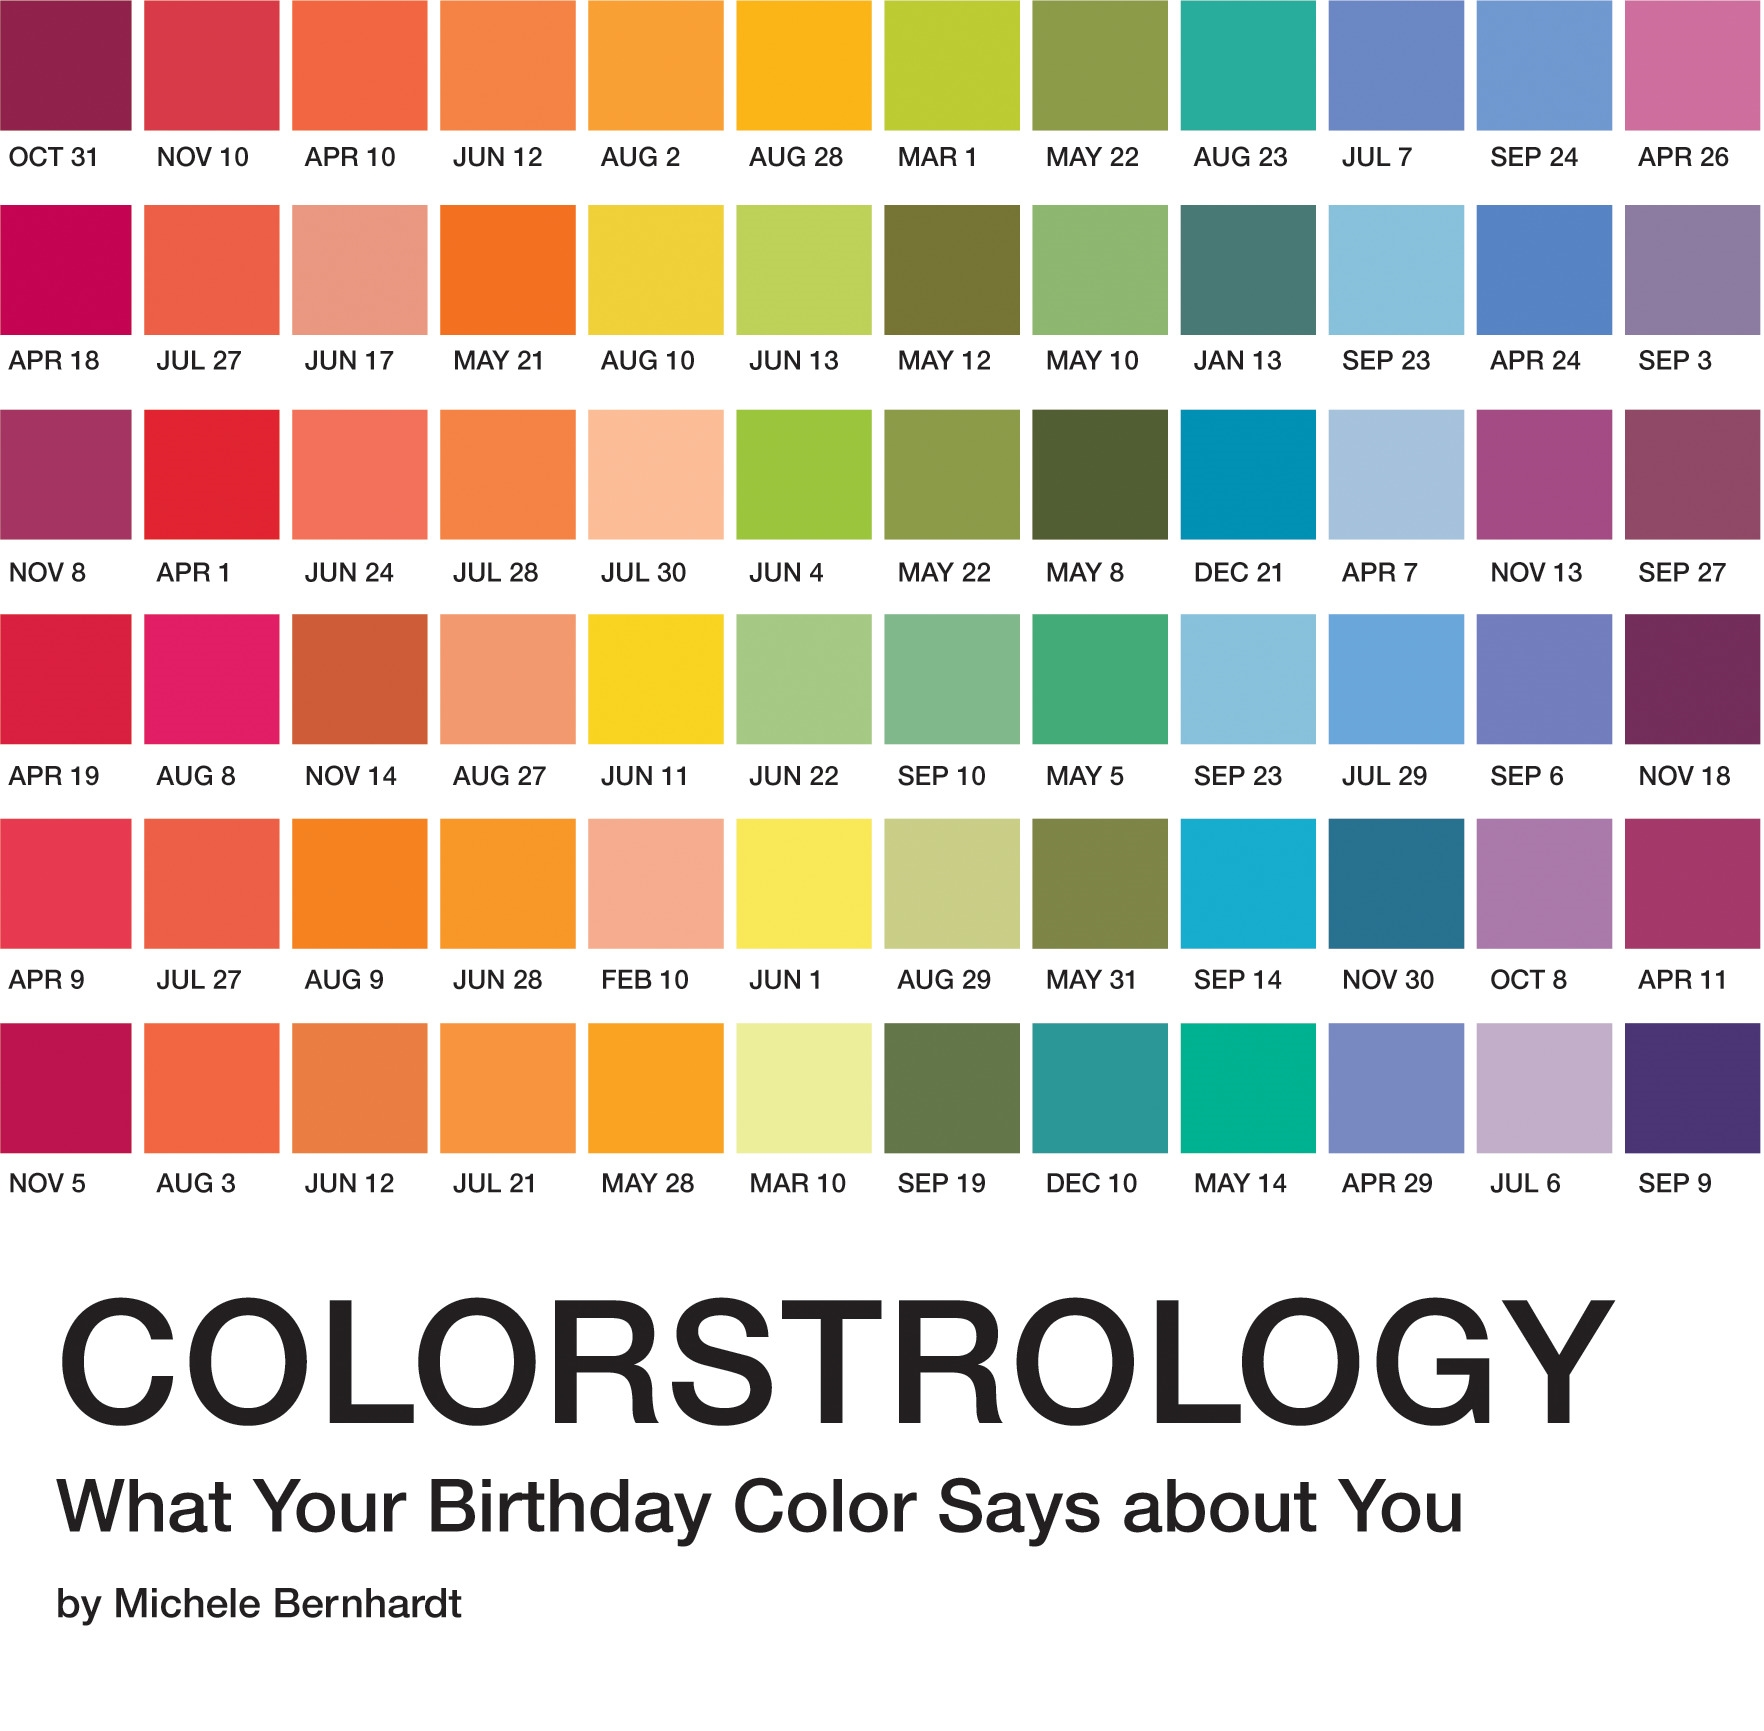 Colorstrology: What Your Birthday Color Says about You by Michele Bernhardt, ISBN: 9781594746918